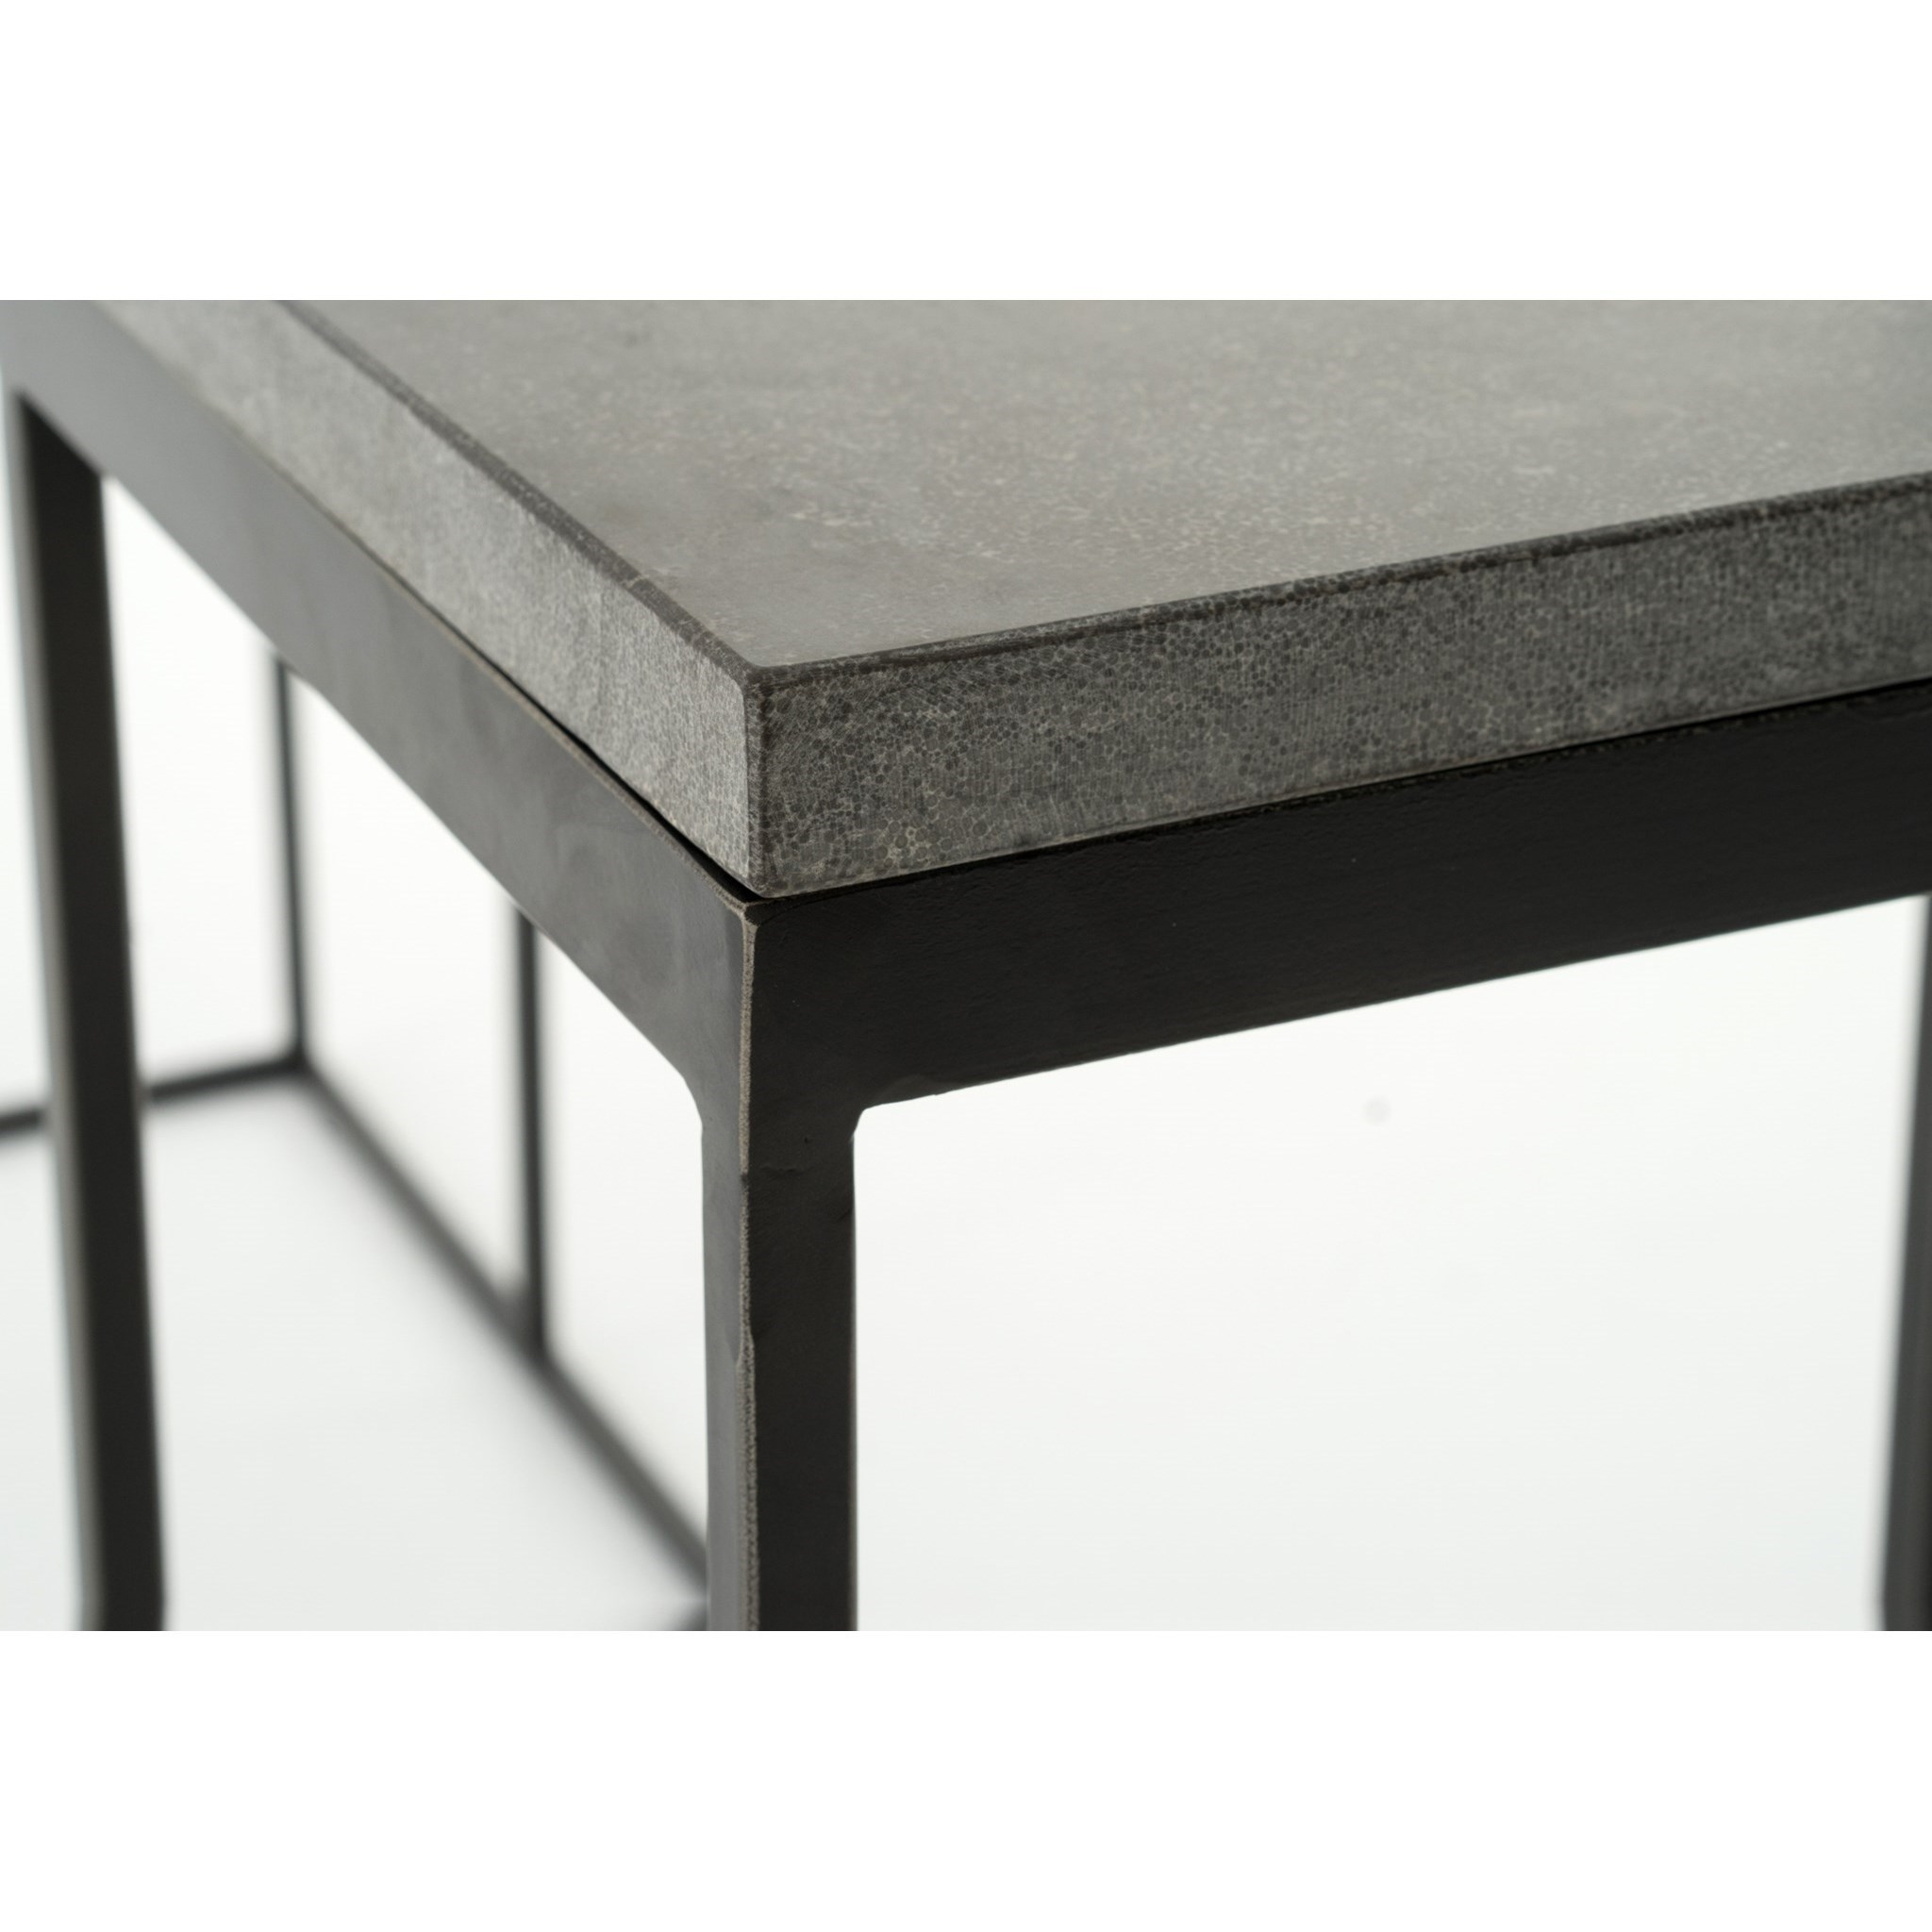 Four Hands Hughes Harlow Console Table